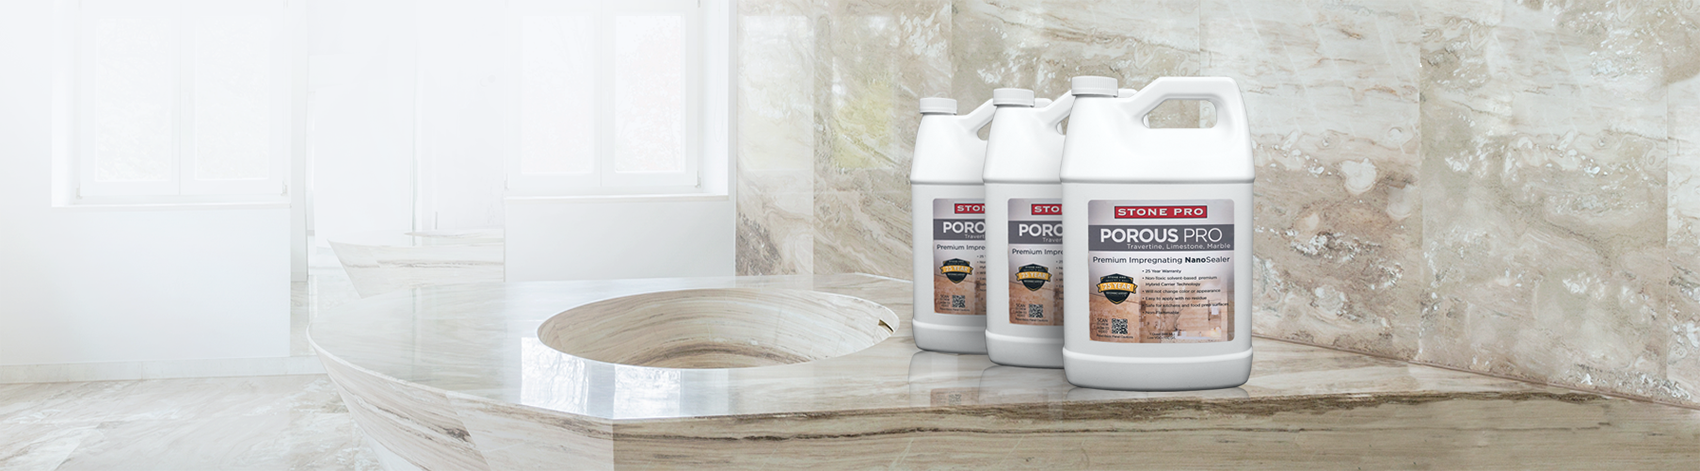 porous pro travertine sealer